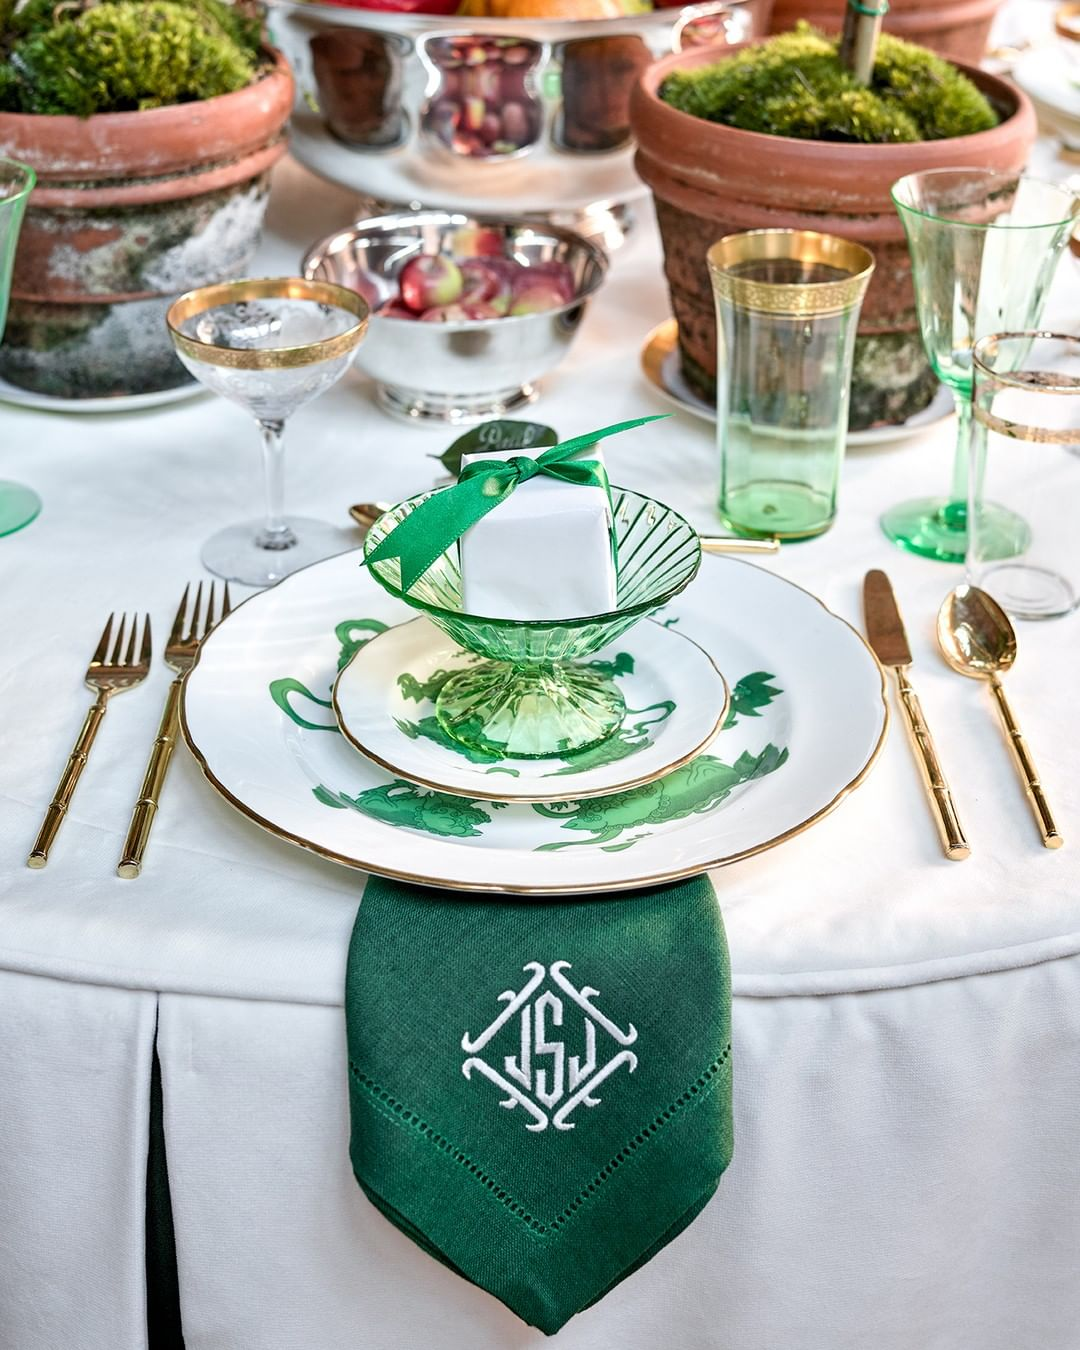 Gorgeous and elegant gree Christmas place setting and lovely tablescape by Jena Salmon for the Atlanta Home for the Holidays Showhouse 2019.